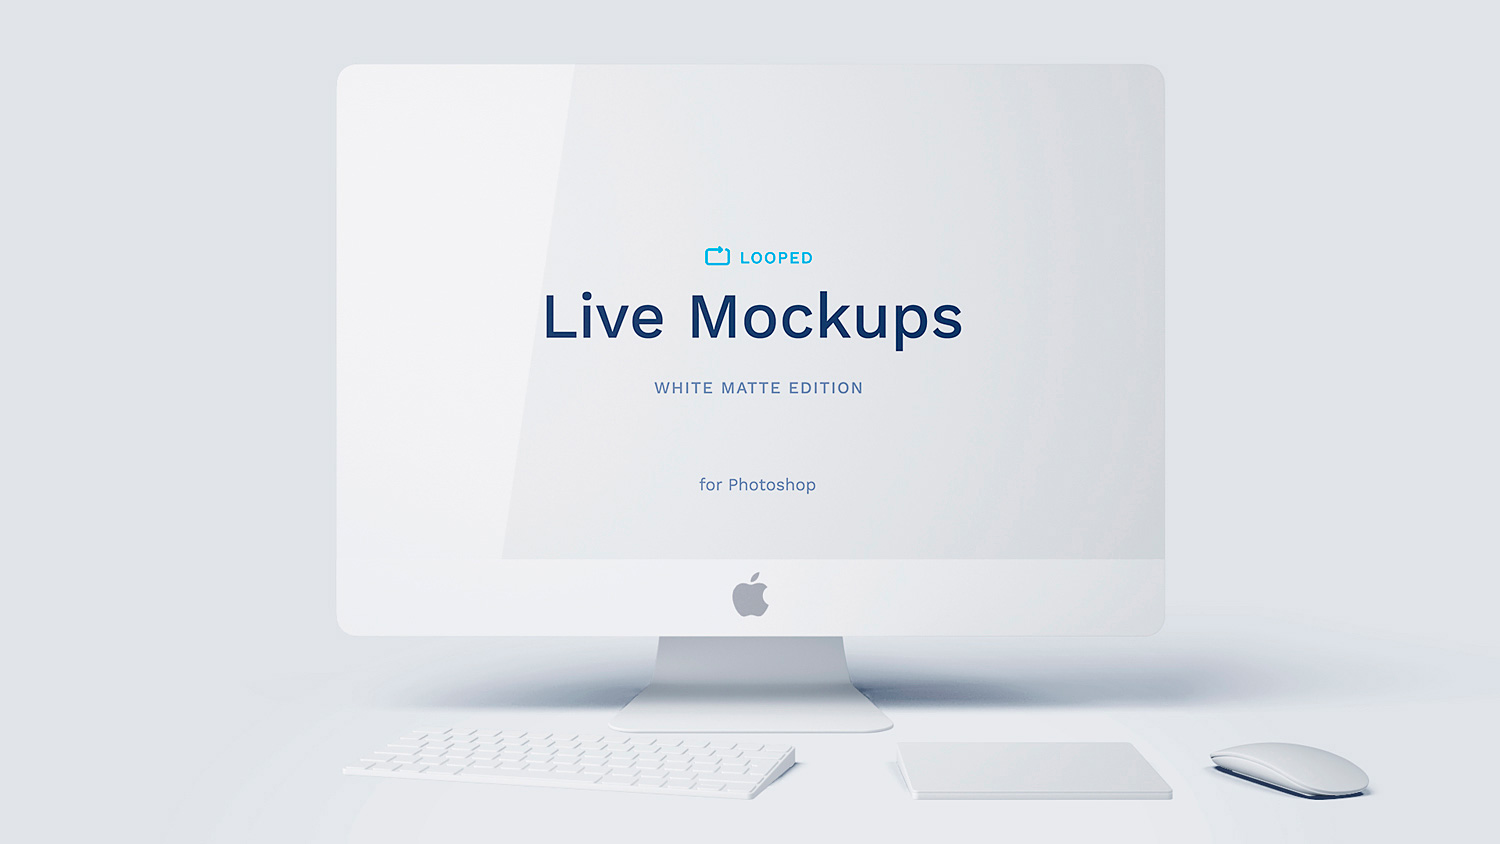 8 White Matte Apple's Device Mockups